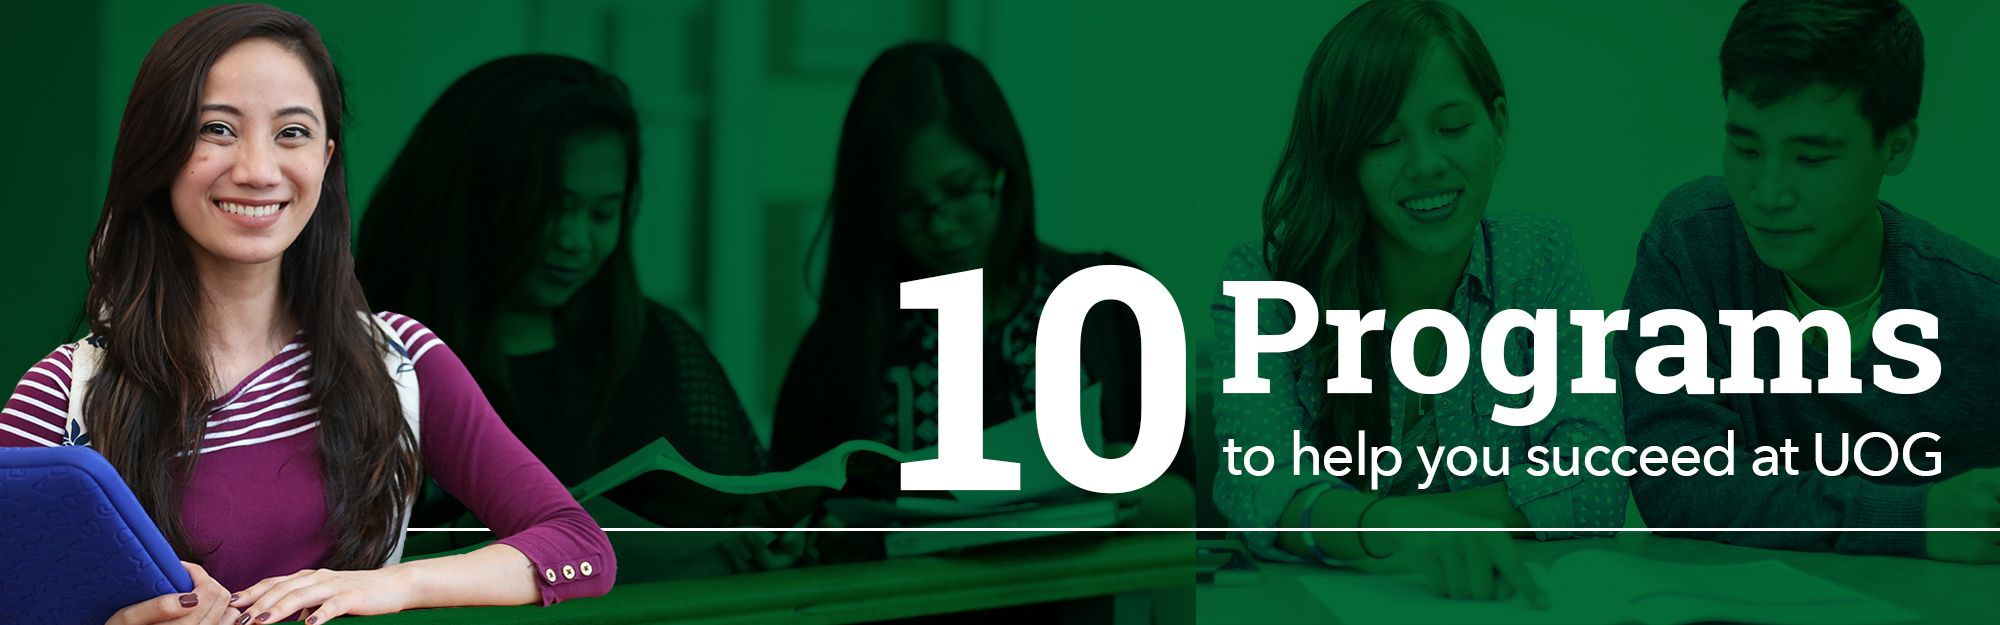 10 programs to help succeed at UOG